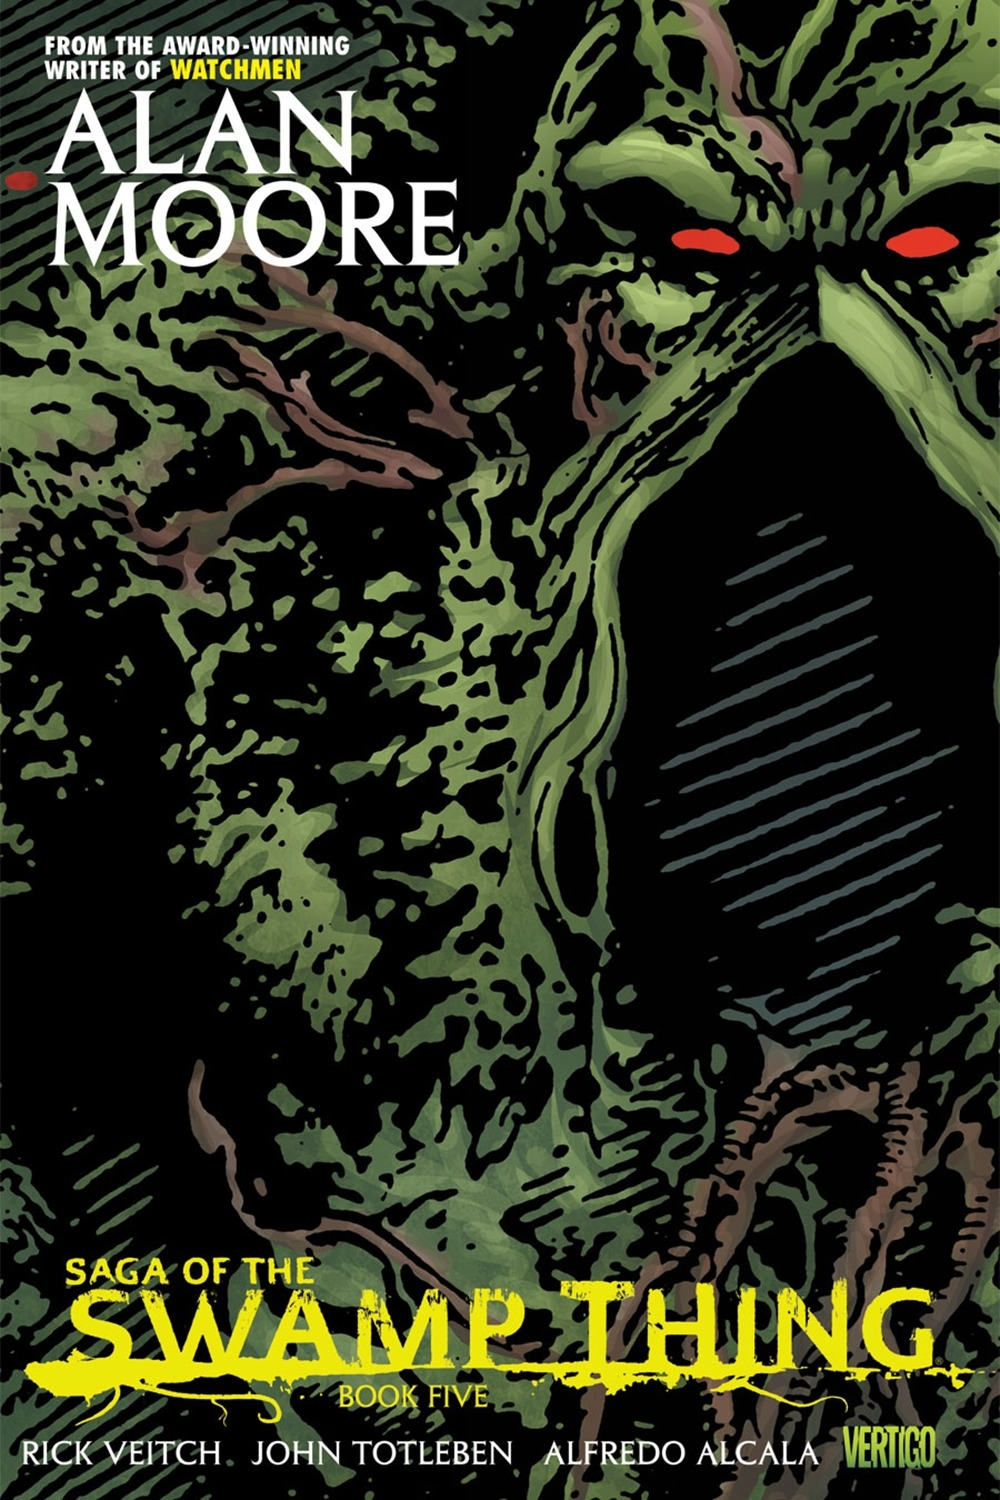 Saga Of The Swamp Thing Book Five by Alan Moore, ISBN: 9781401230968